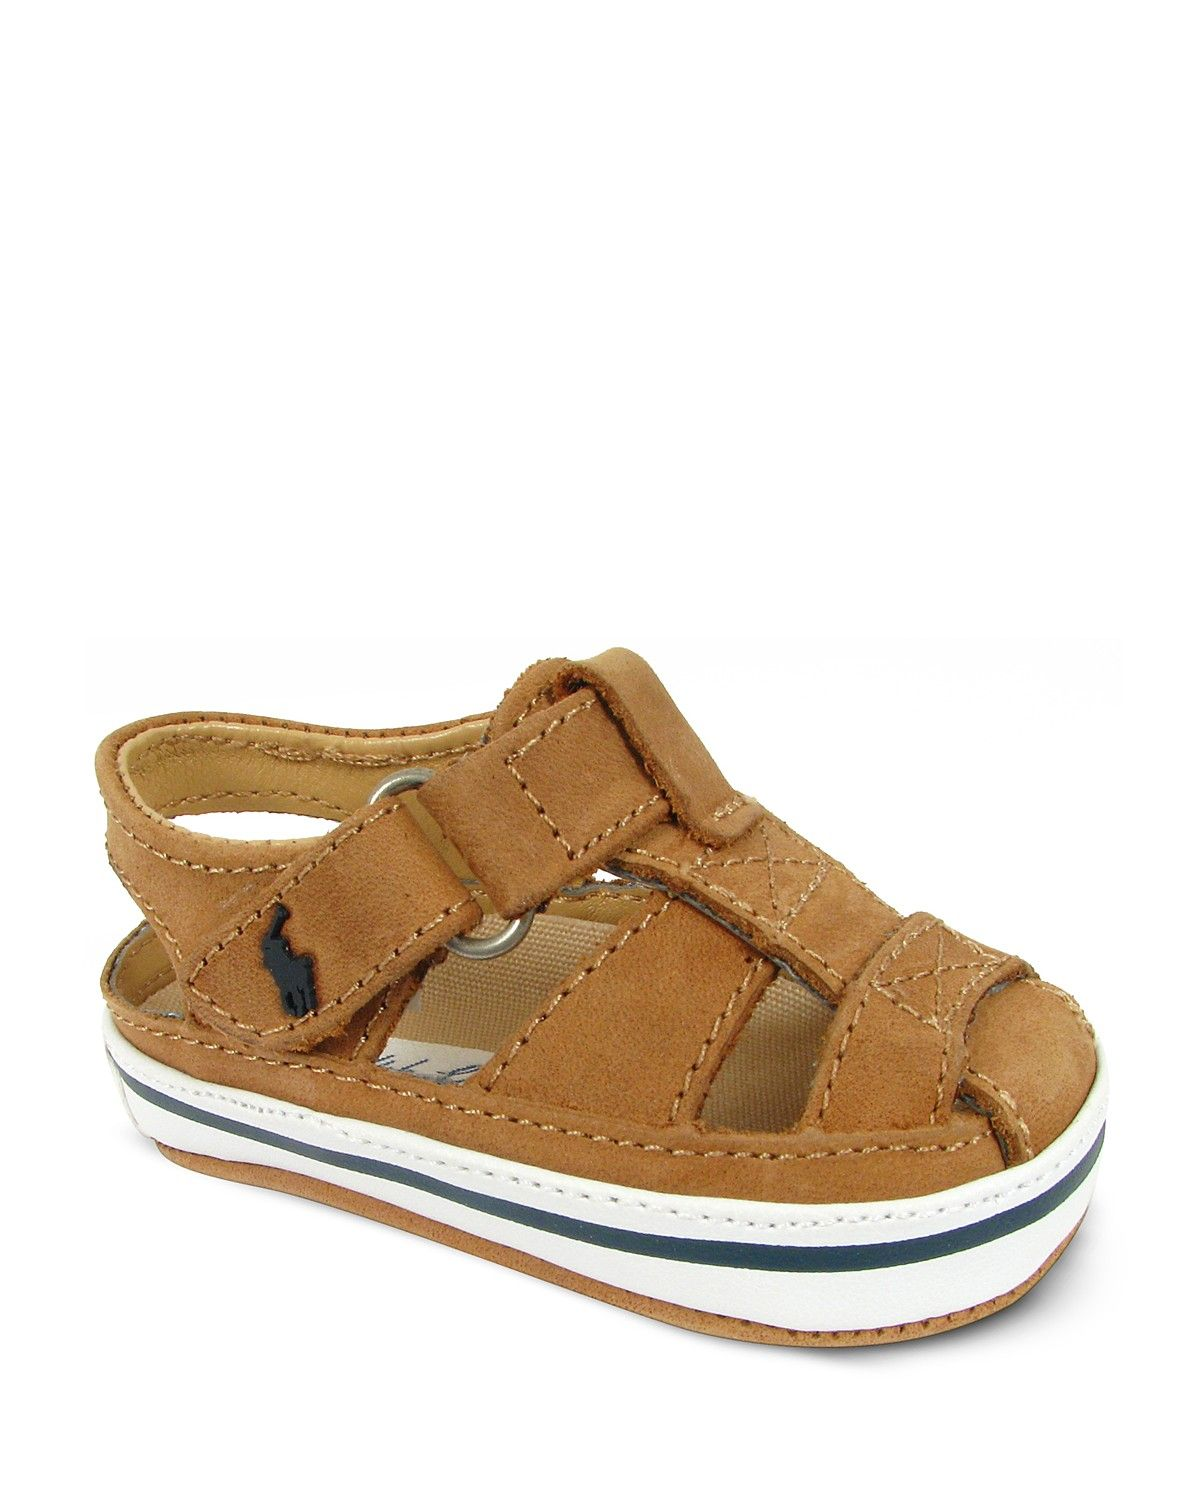 732572fe044121 Ralph Lauren Childrenswear Infant Boys' Sander Fisherman Tan Leather Sandals  - Sizes 1-4 Infant | Bloomingdale's...might be too late for these, ...